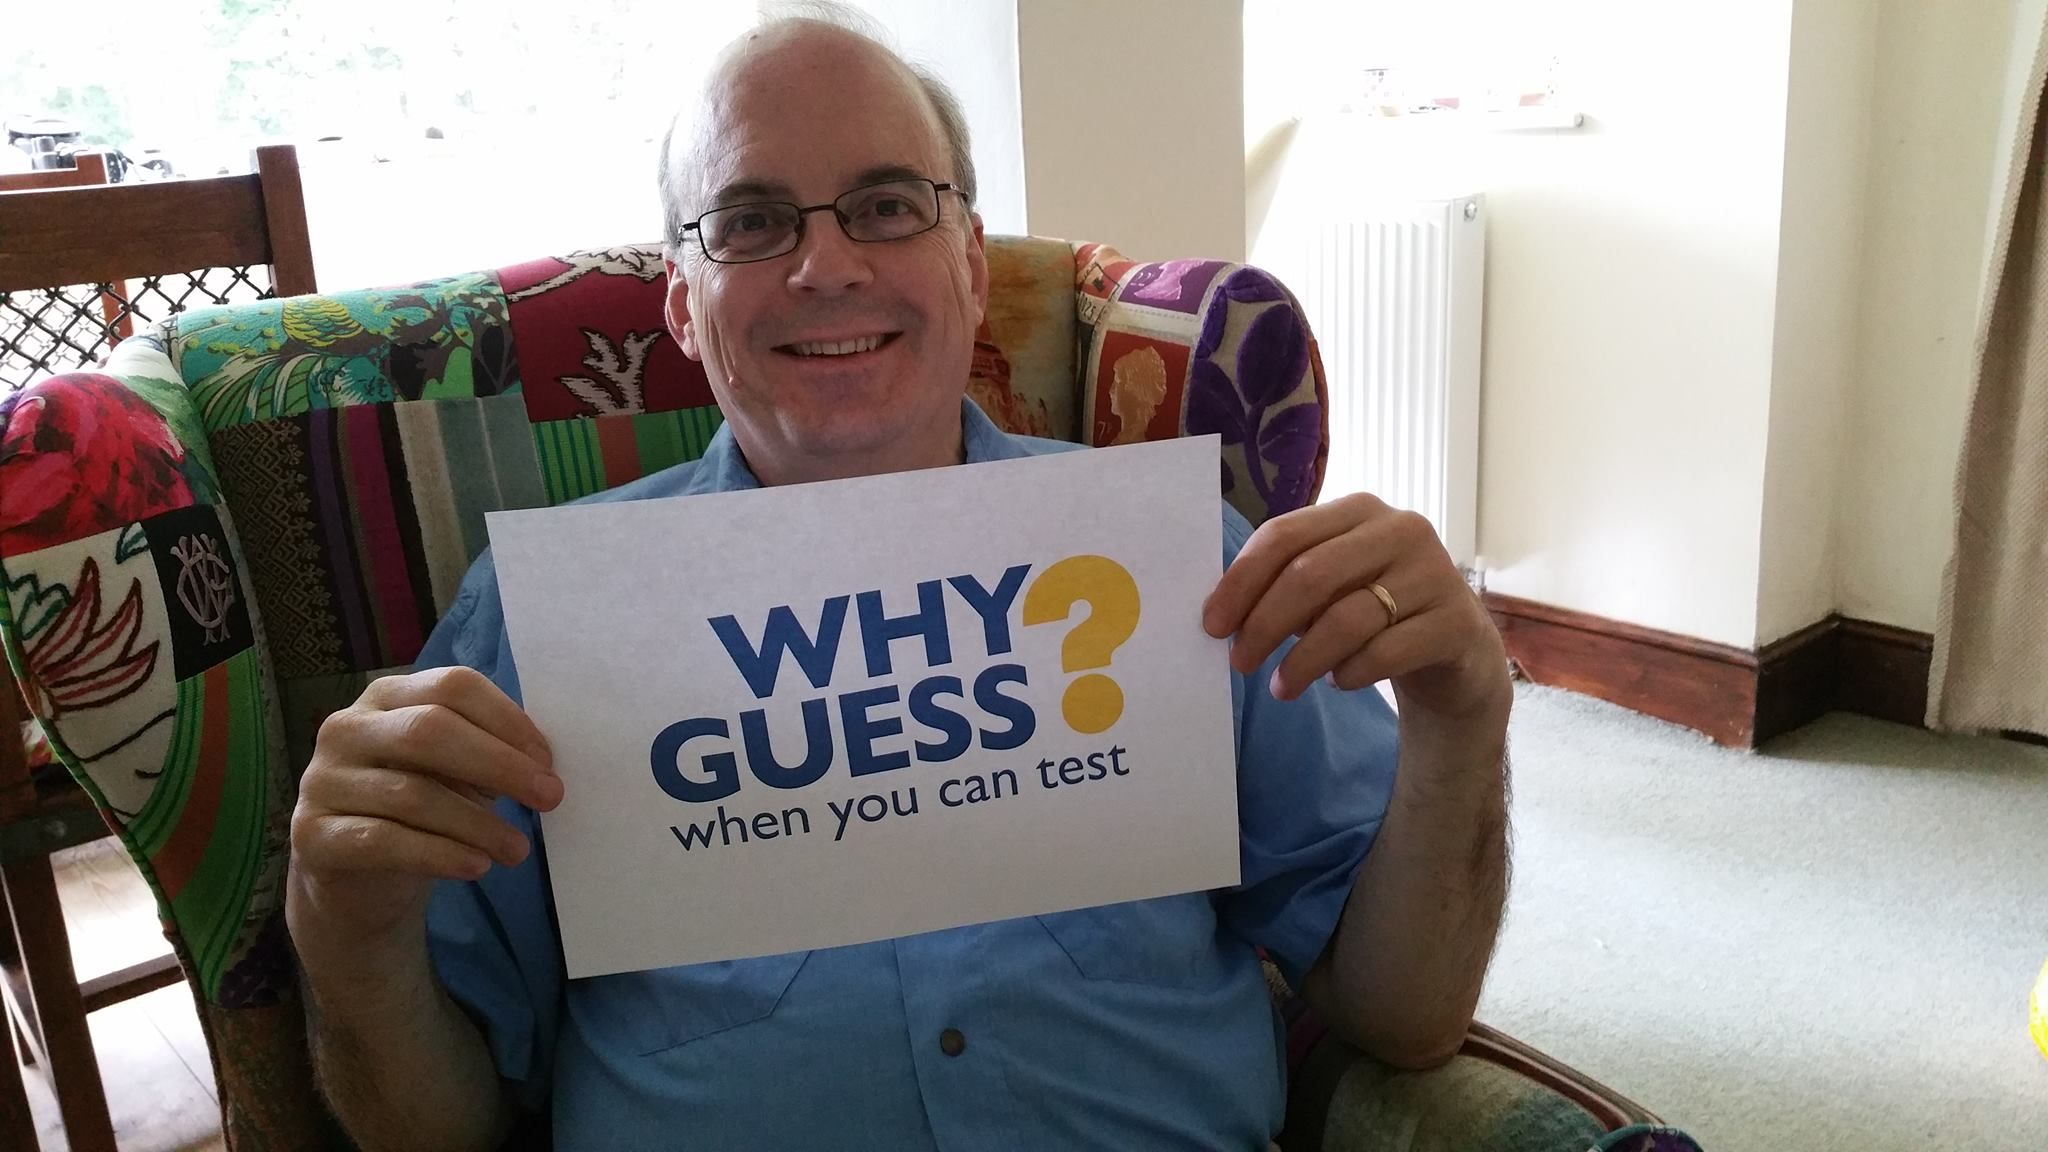 Send us your selfie with the #WhyGuess poster and tell us why you support the campaign: www.gbss.org.uk/...